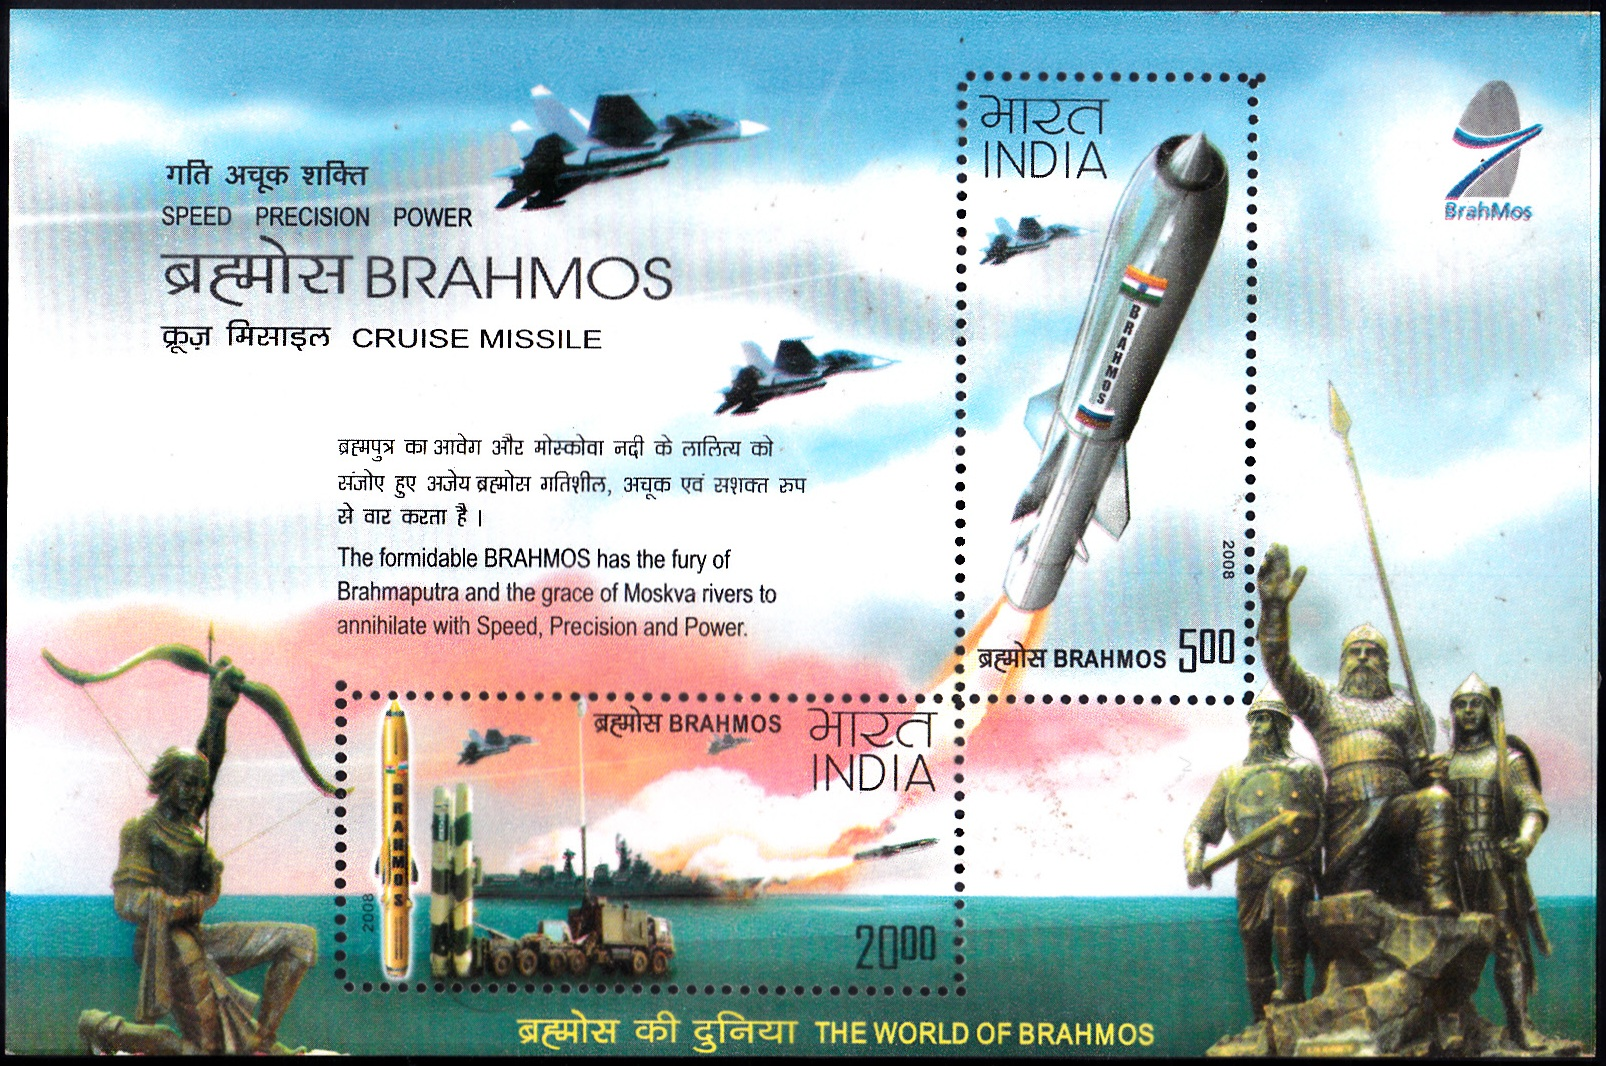 BrahMos : Surface-to-Surface Missile